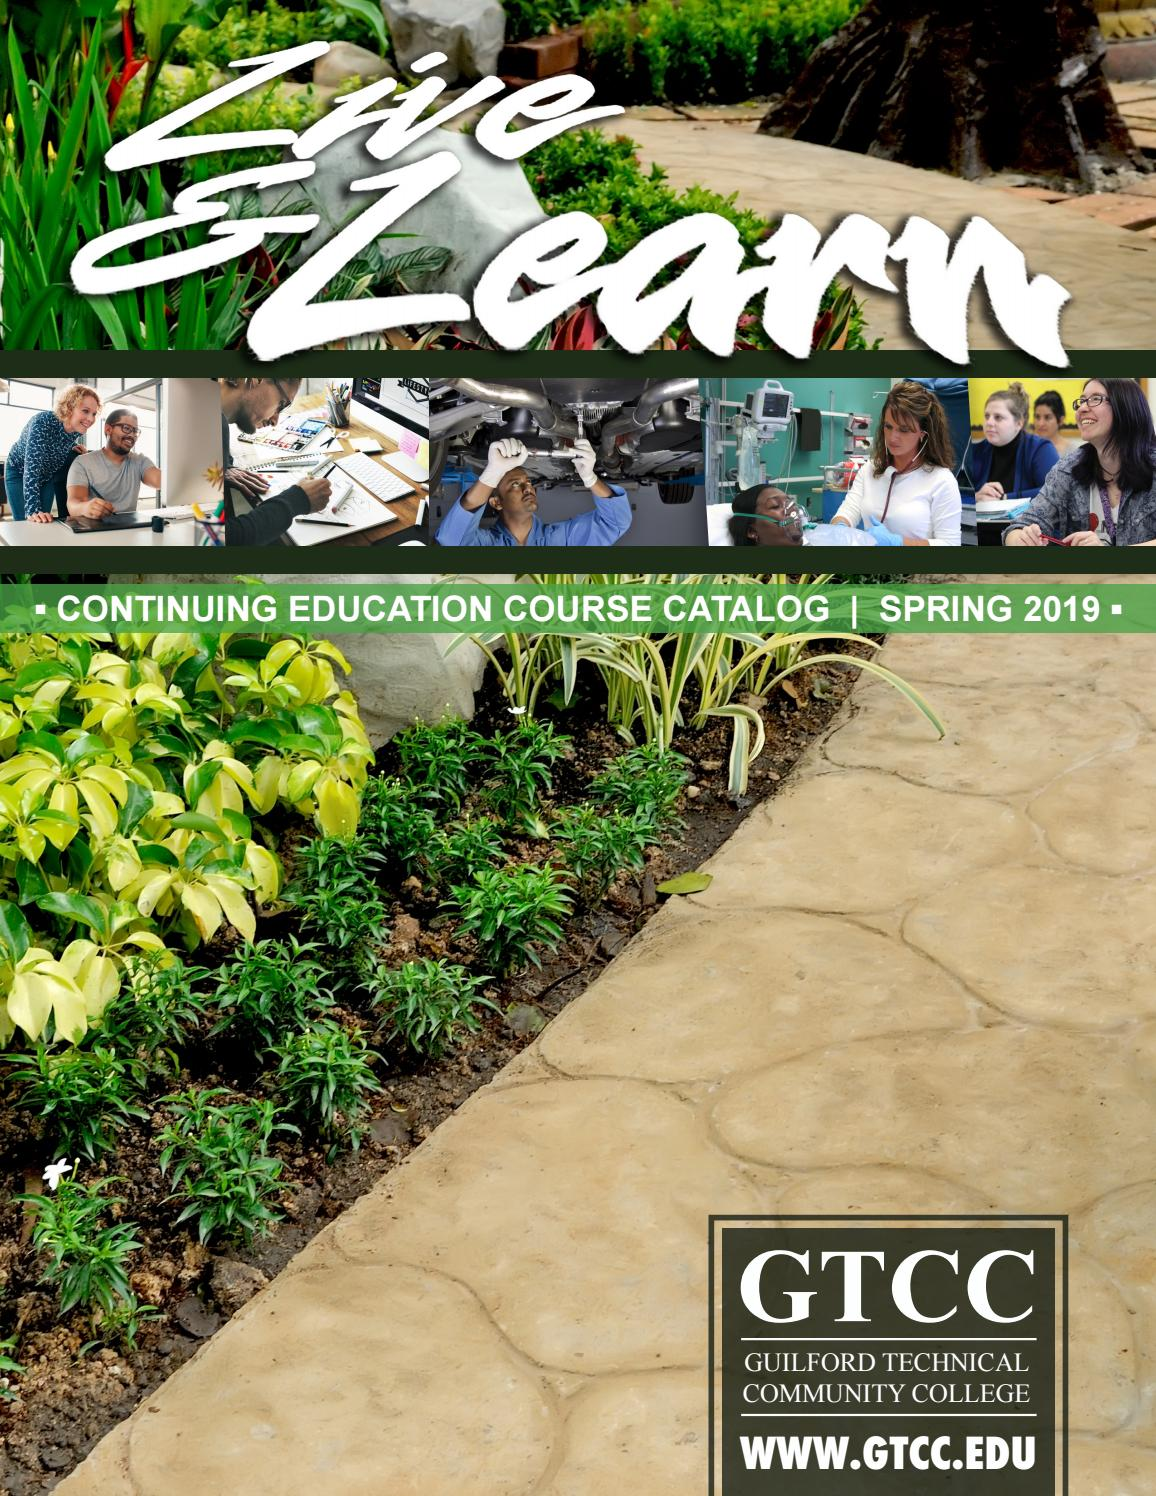 Spring 2019 Live And Learn Catalog By Guilford Technical Community College Issuu